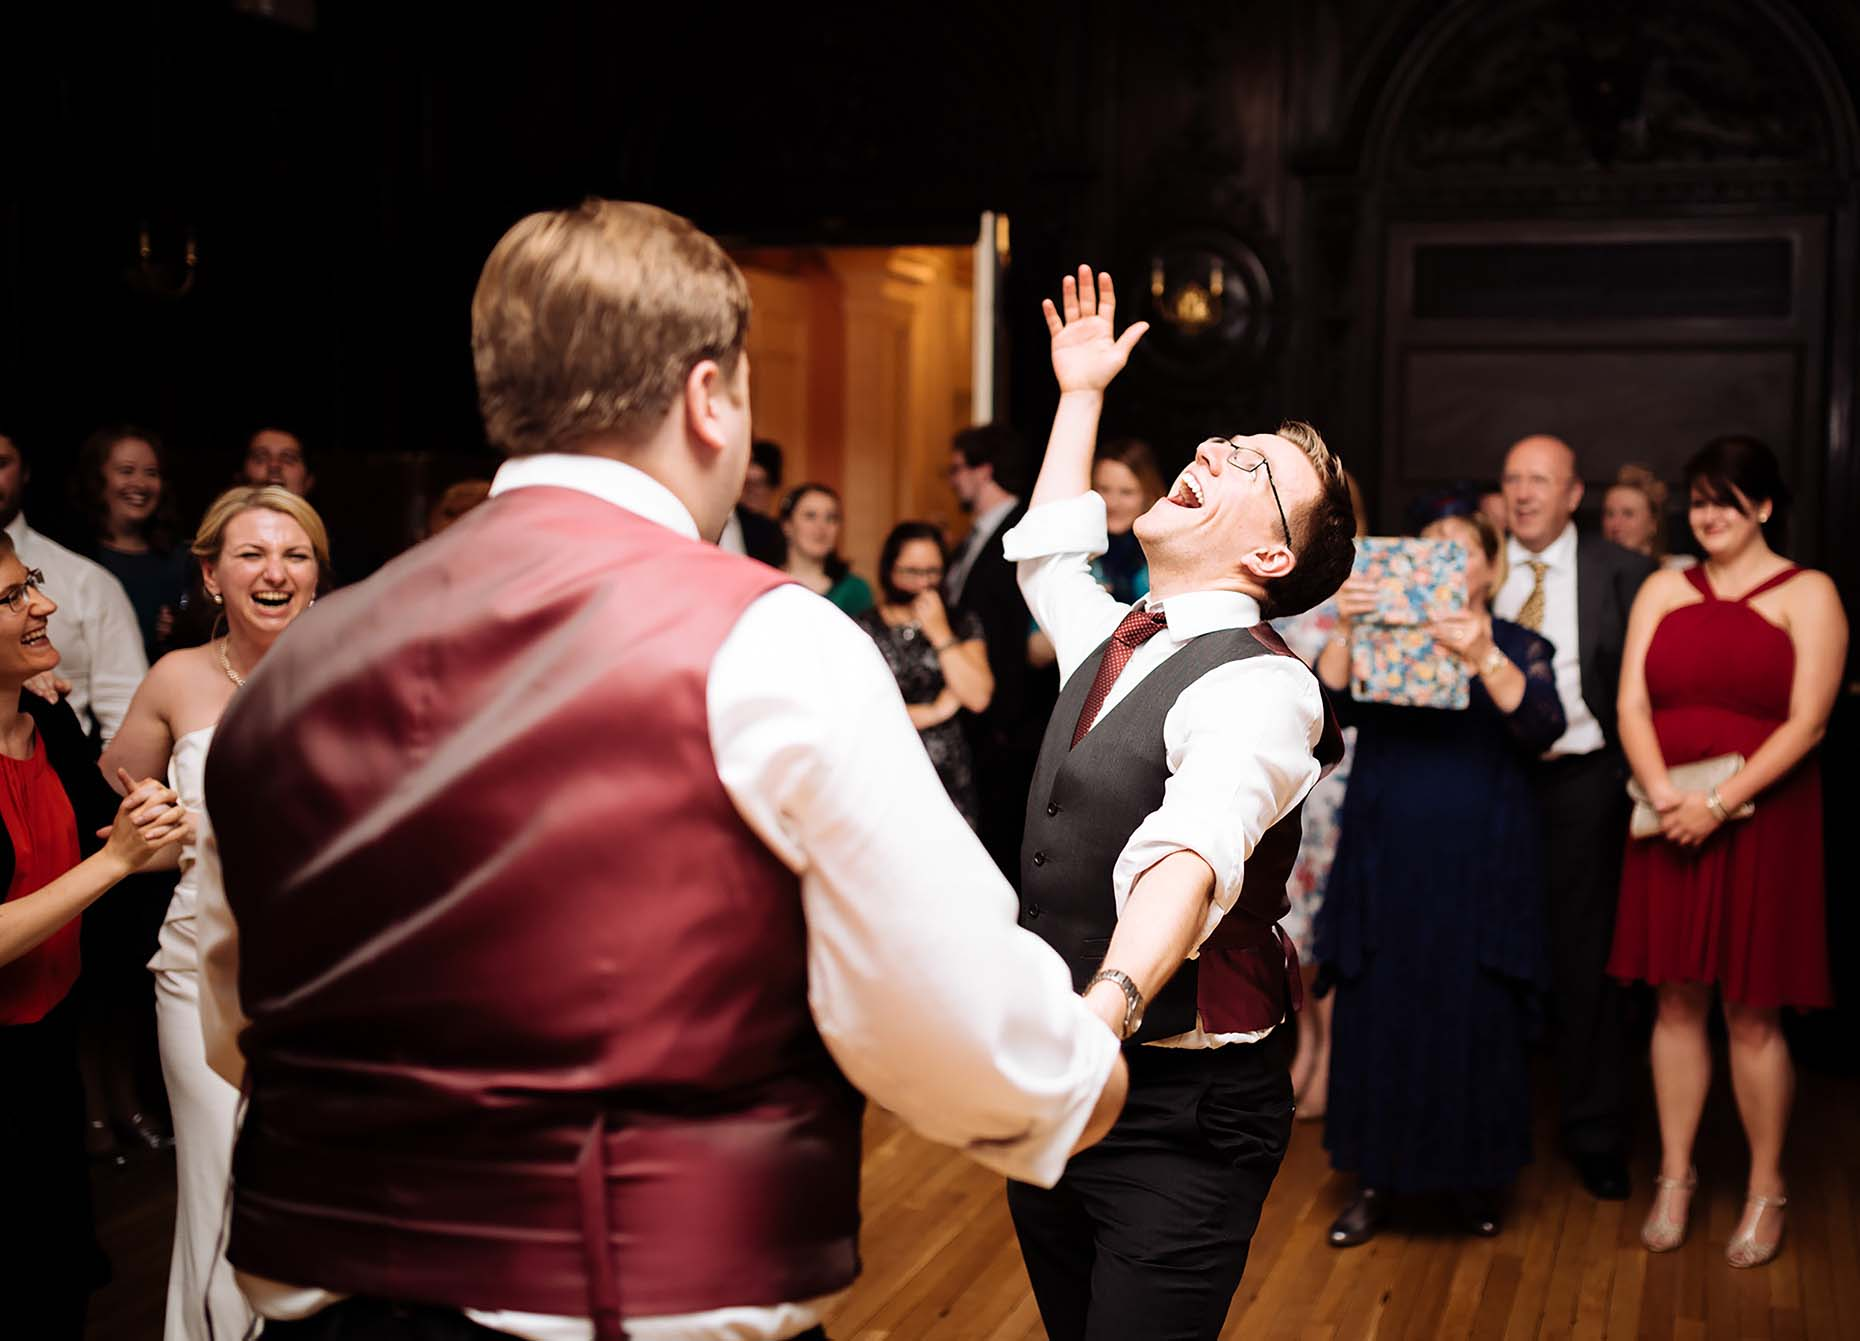 london-wedding-dancefloor-photographer-joy-men-dancing-13